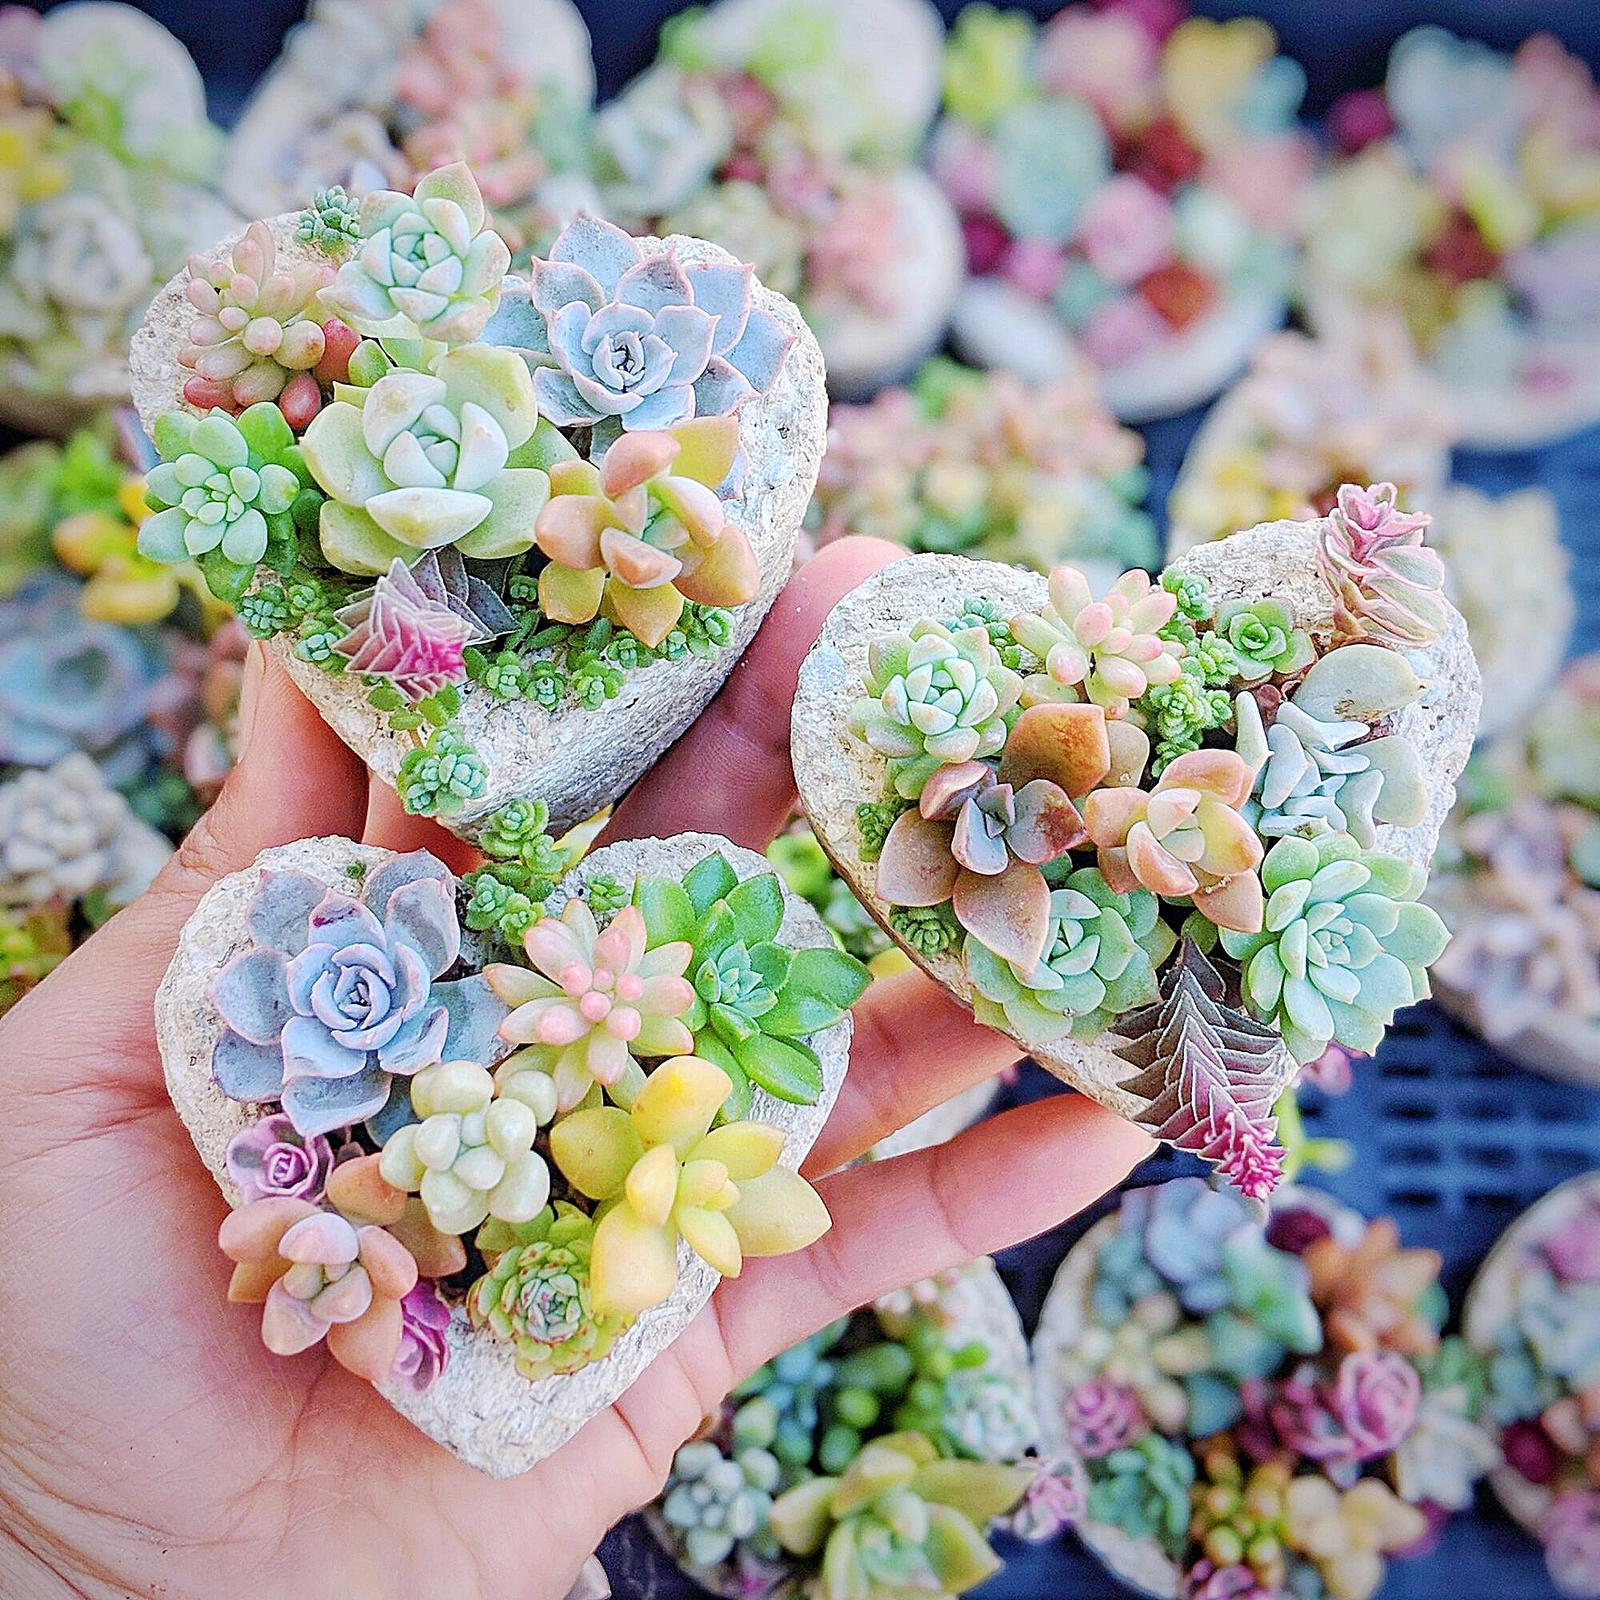 Mini succulent arrangements